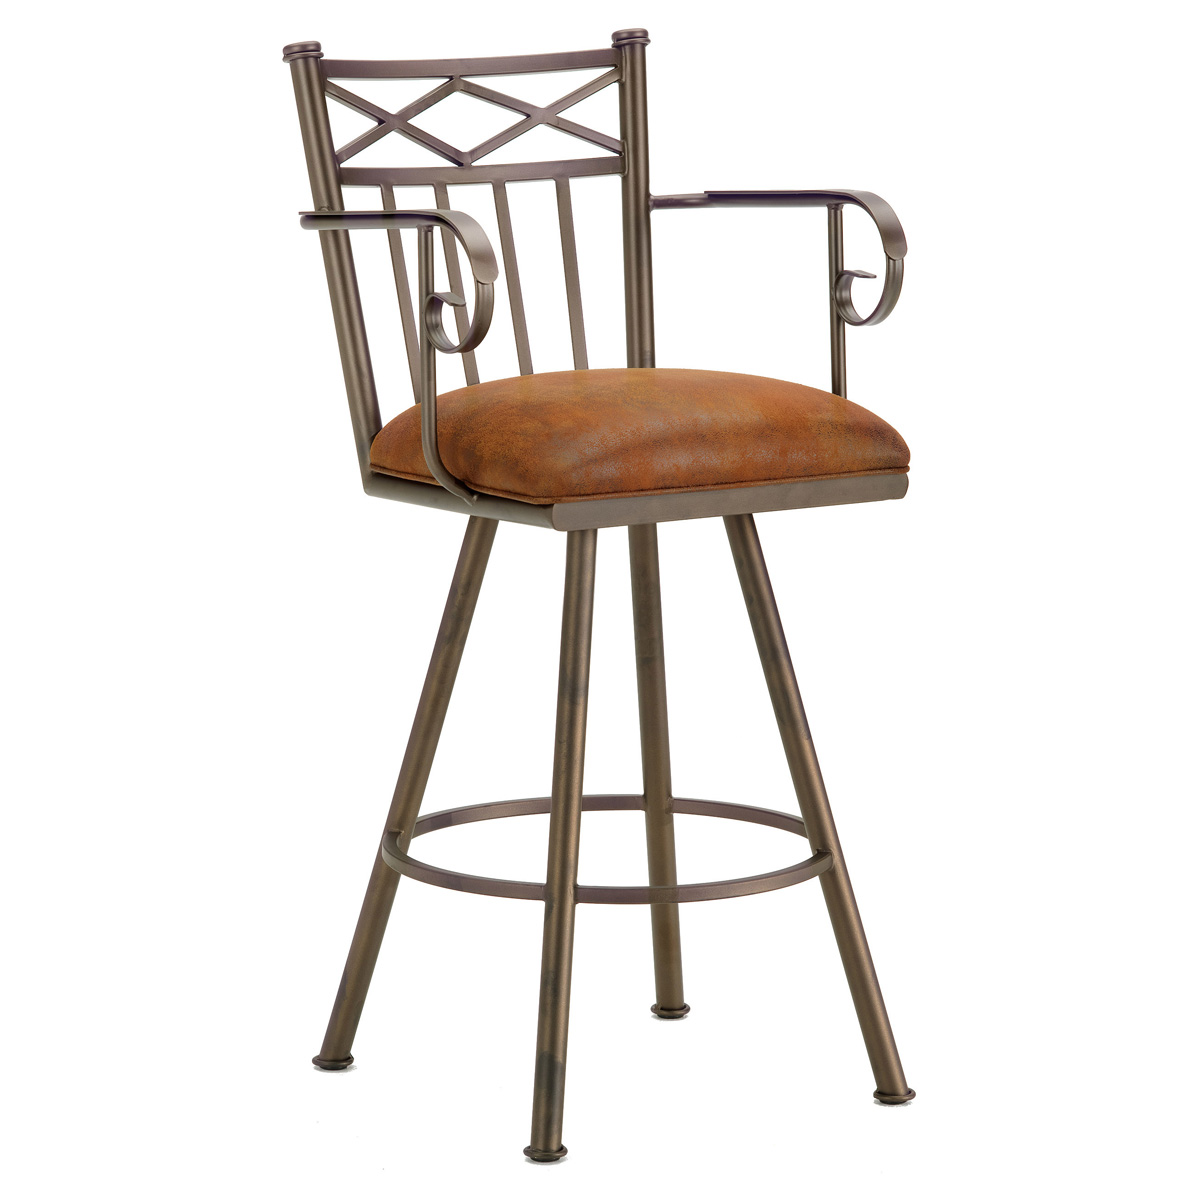 "Alexander 30"" Swivel Bar Stool - Armrests, X Motif, Microfiber"